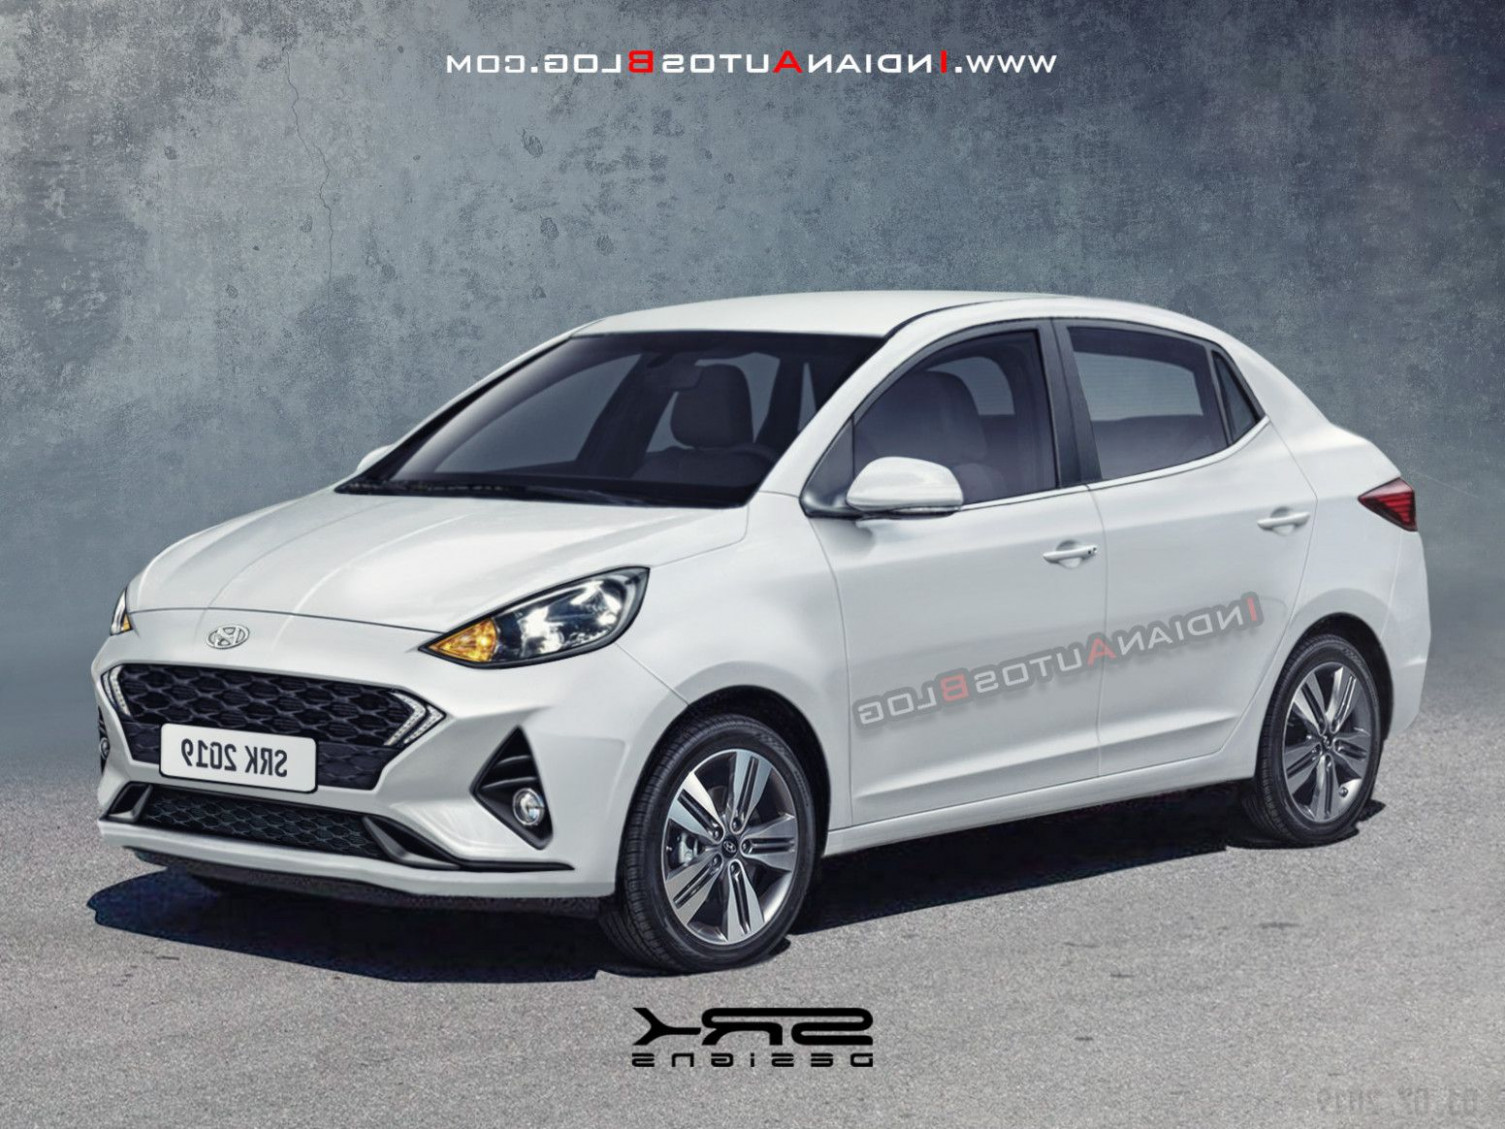 7 Disadvantages Of Hyundai Xcent Facelift 7 And How You | Hyundai - hyundai xcent 2020